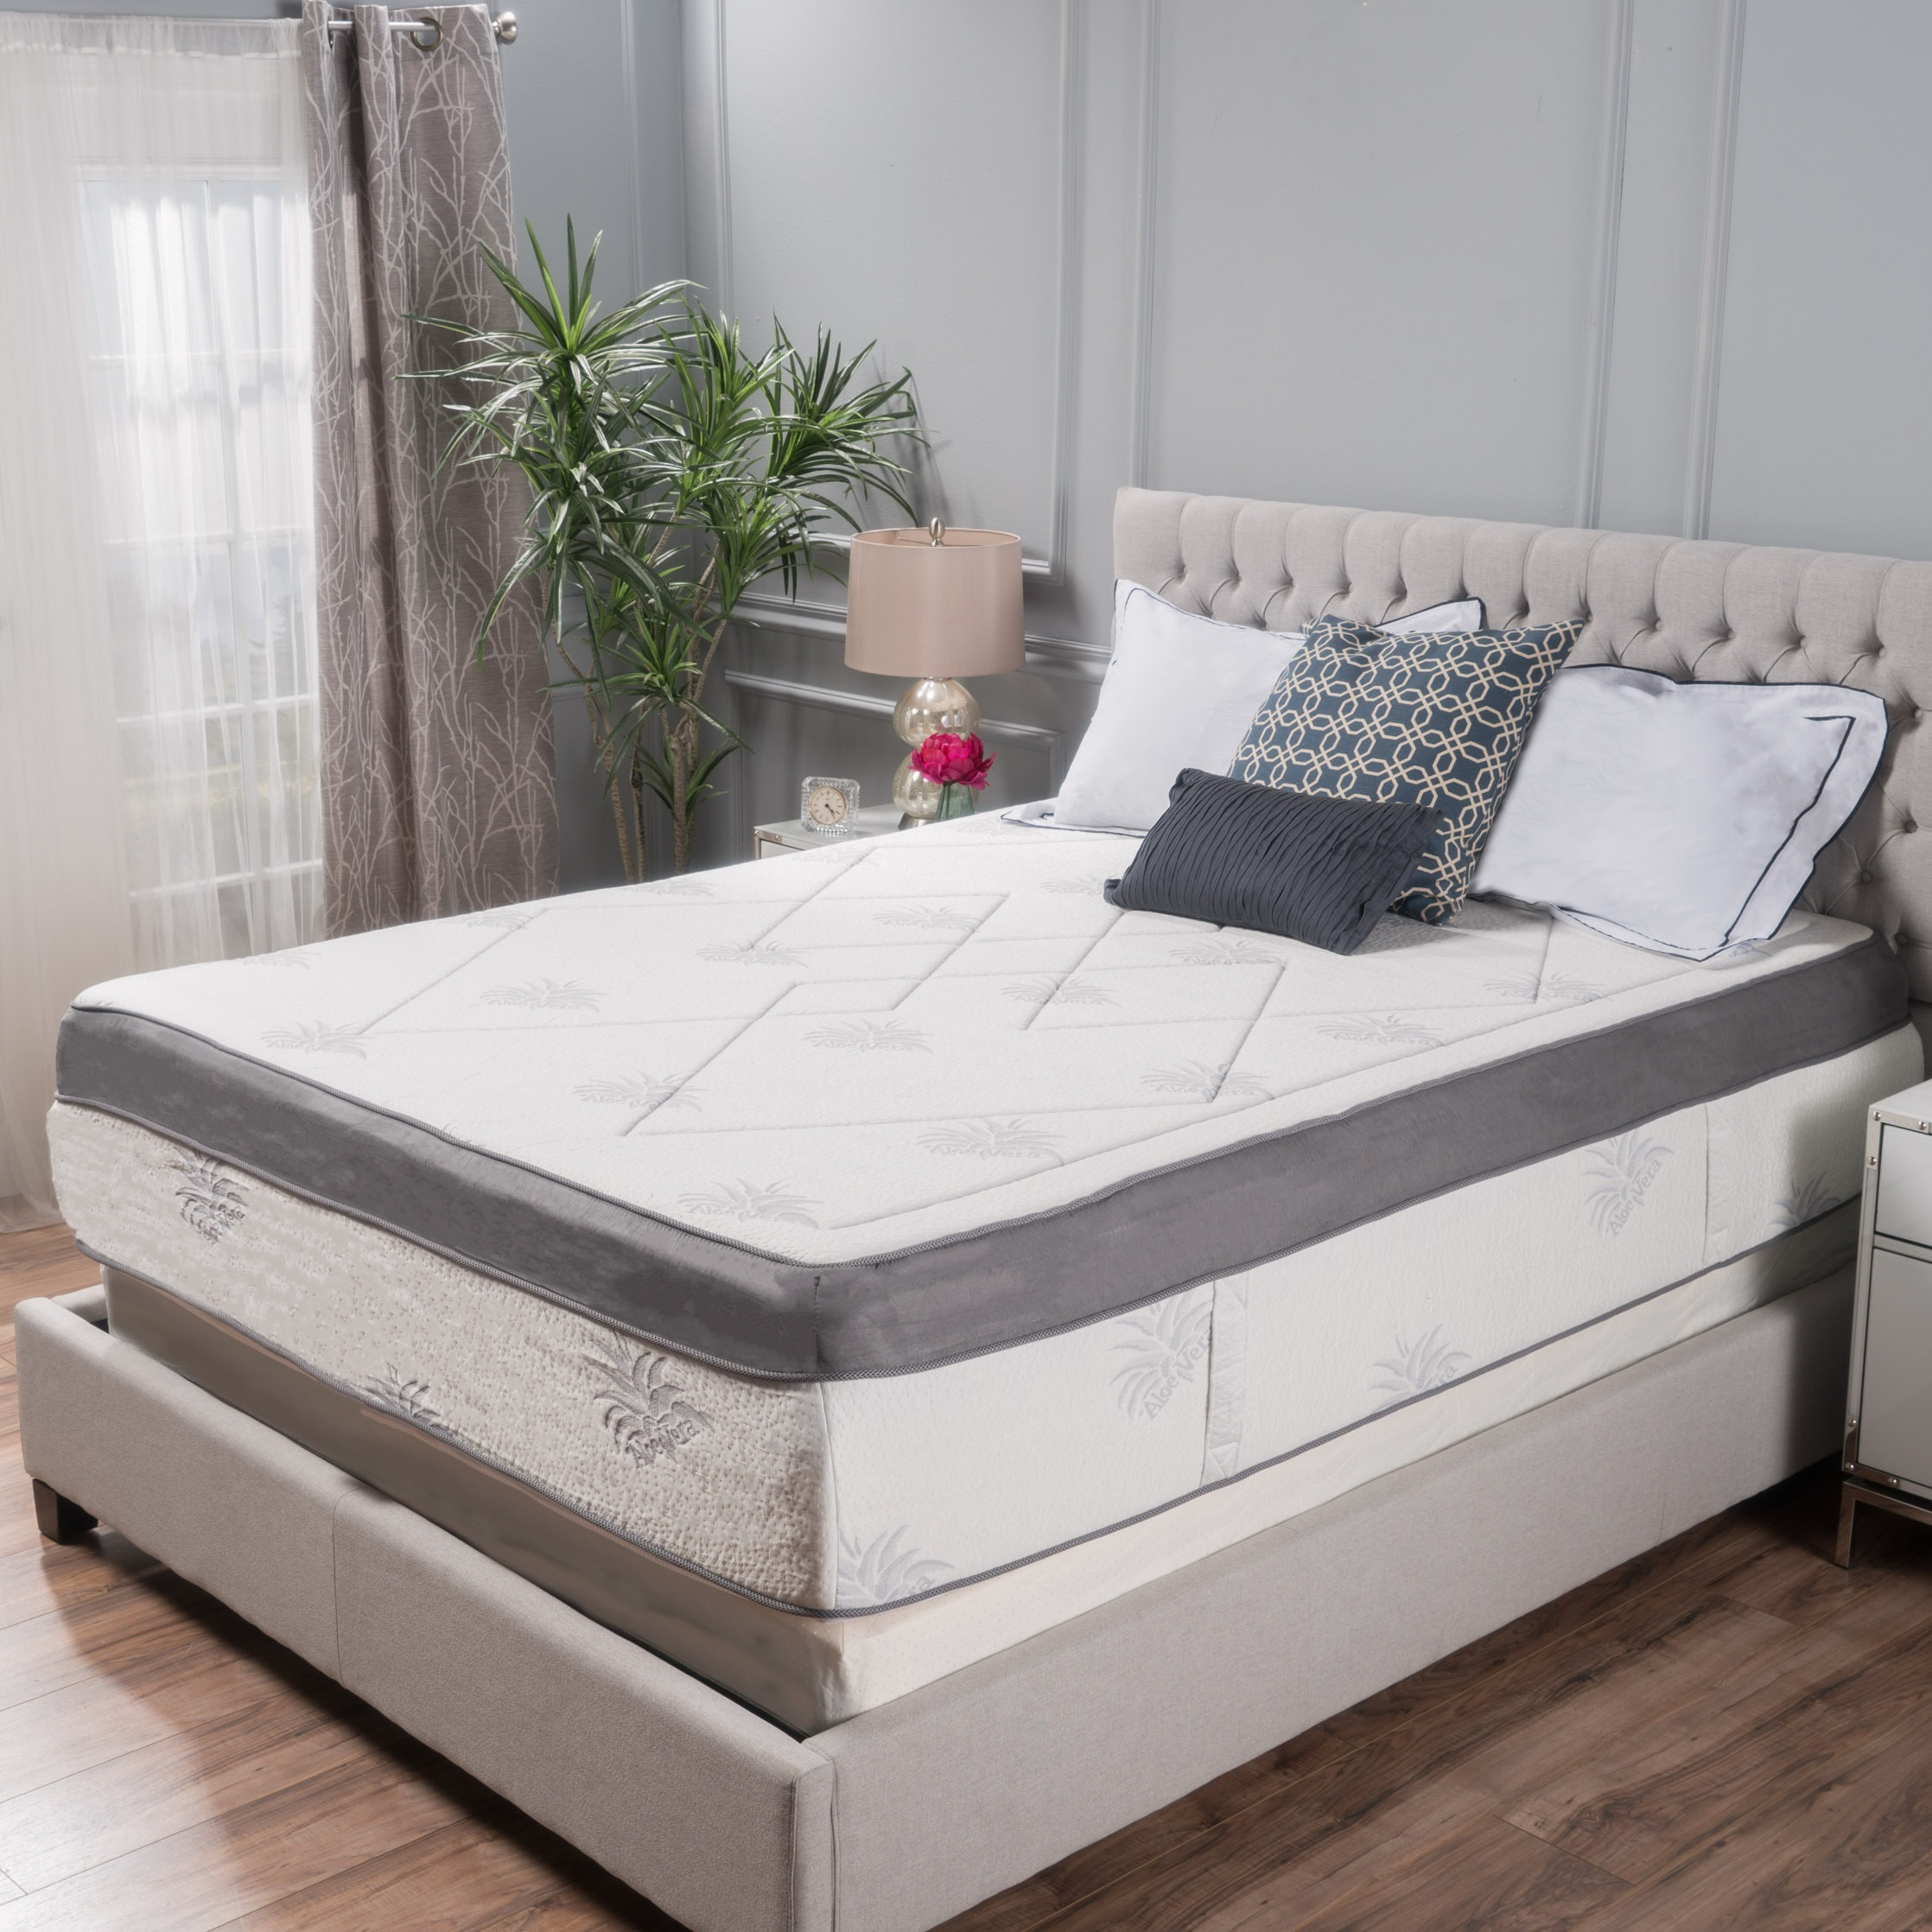 tempurpedic pedic tempur of bedding bed sale king retailers mattress full queen cost for size price firm thermopedic beds